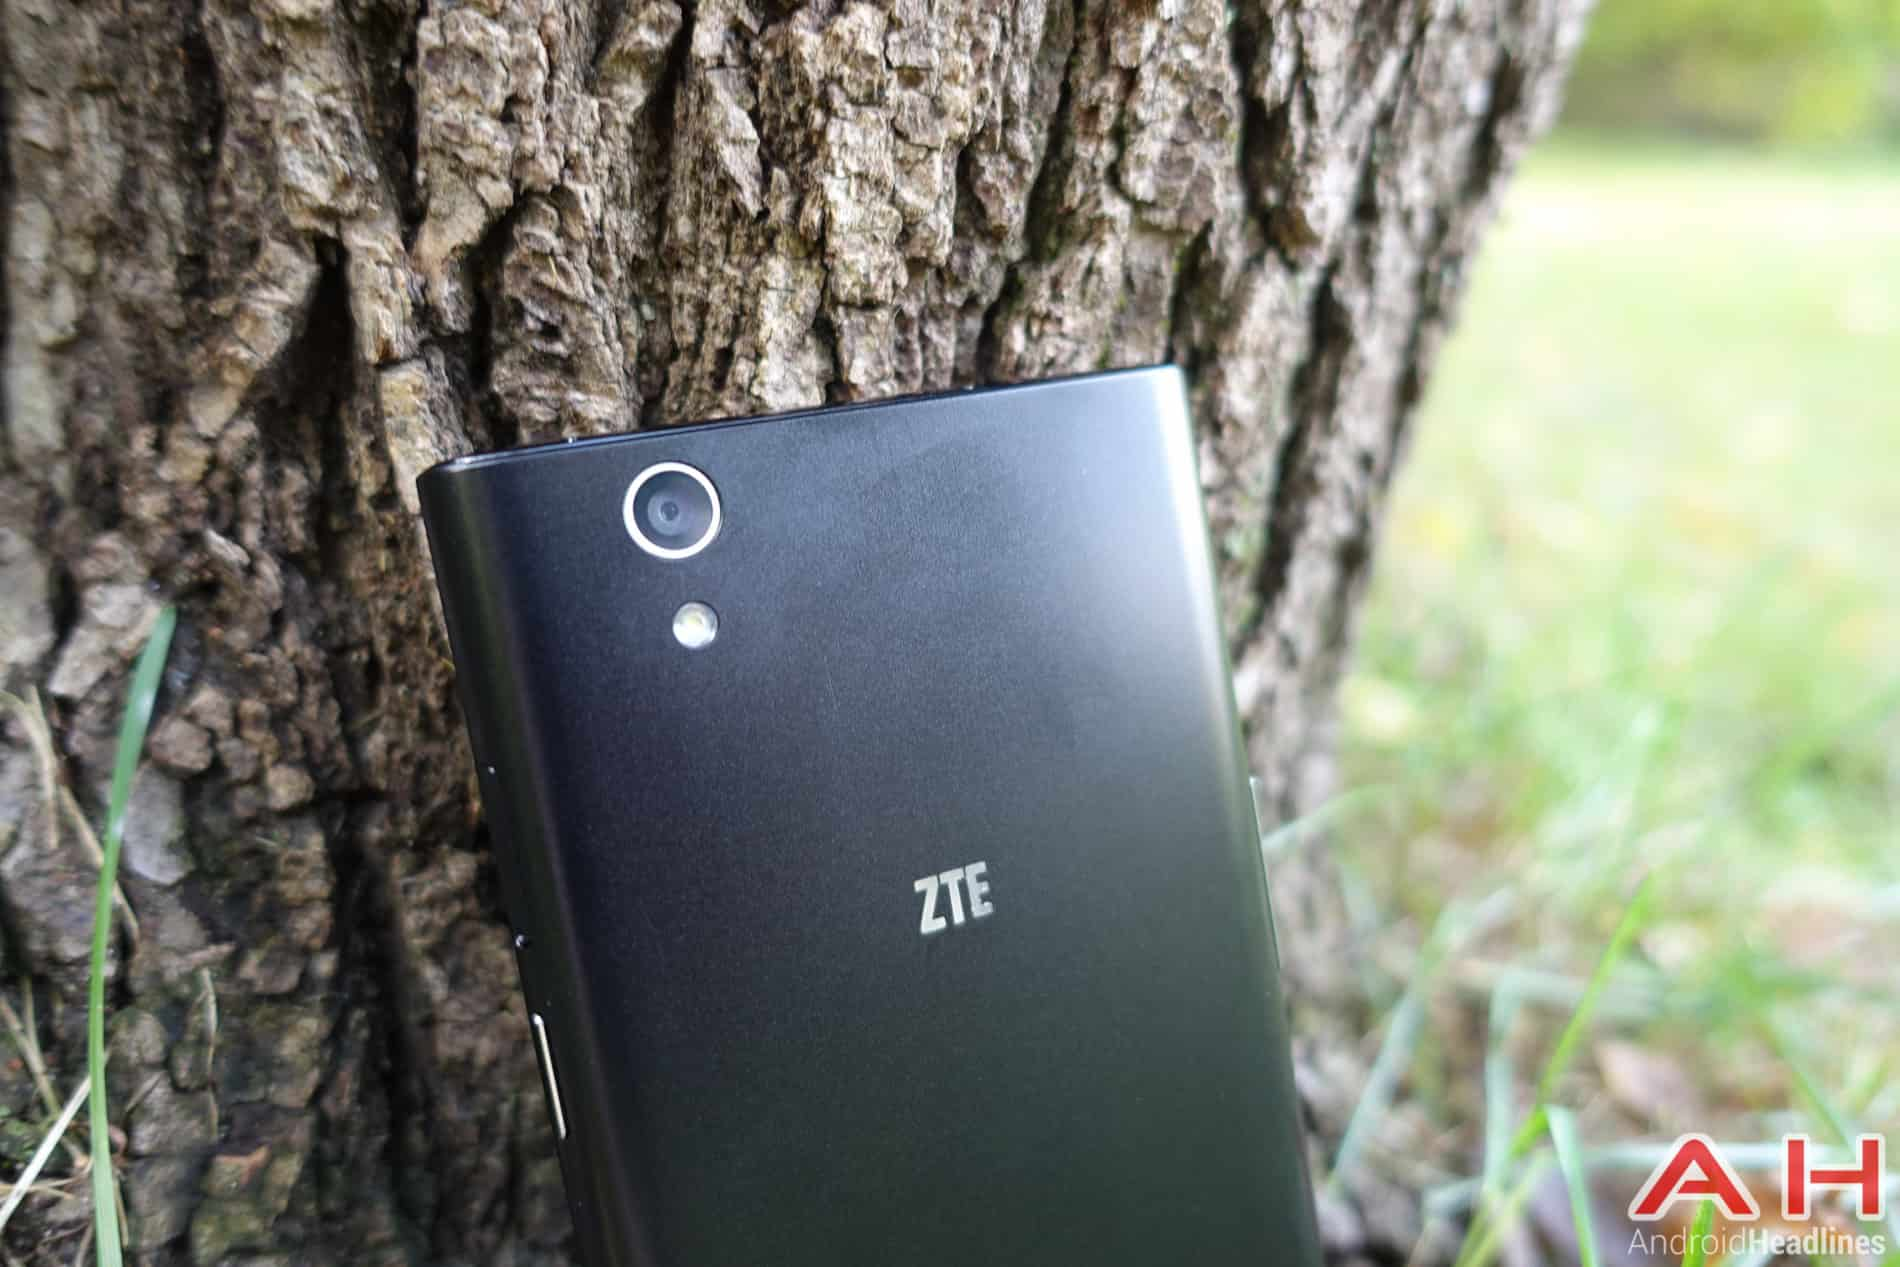 Customers Trying To Remove The Battery From The Zte Zmax Is Why Tmobile  Stopped Sales Of